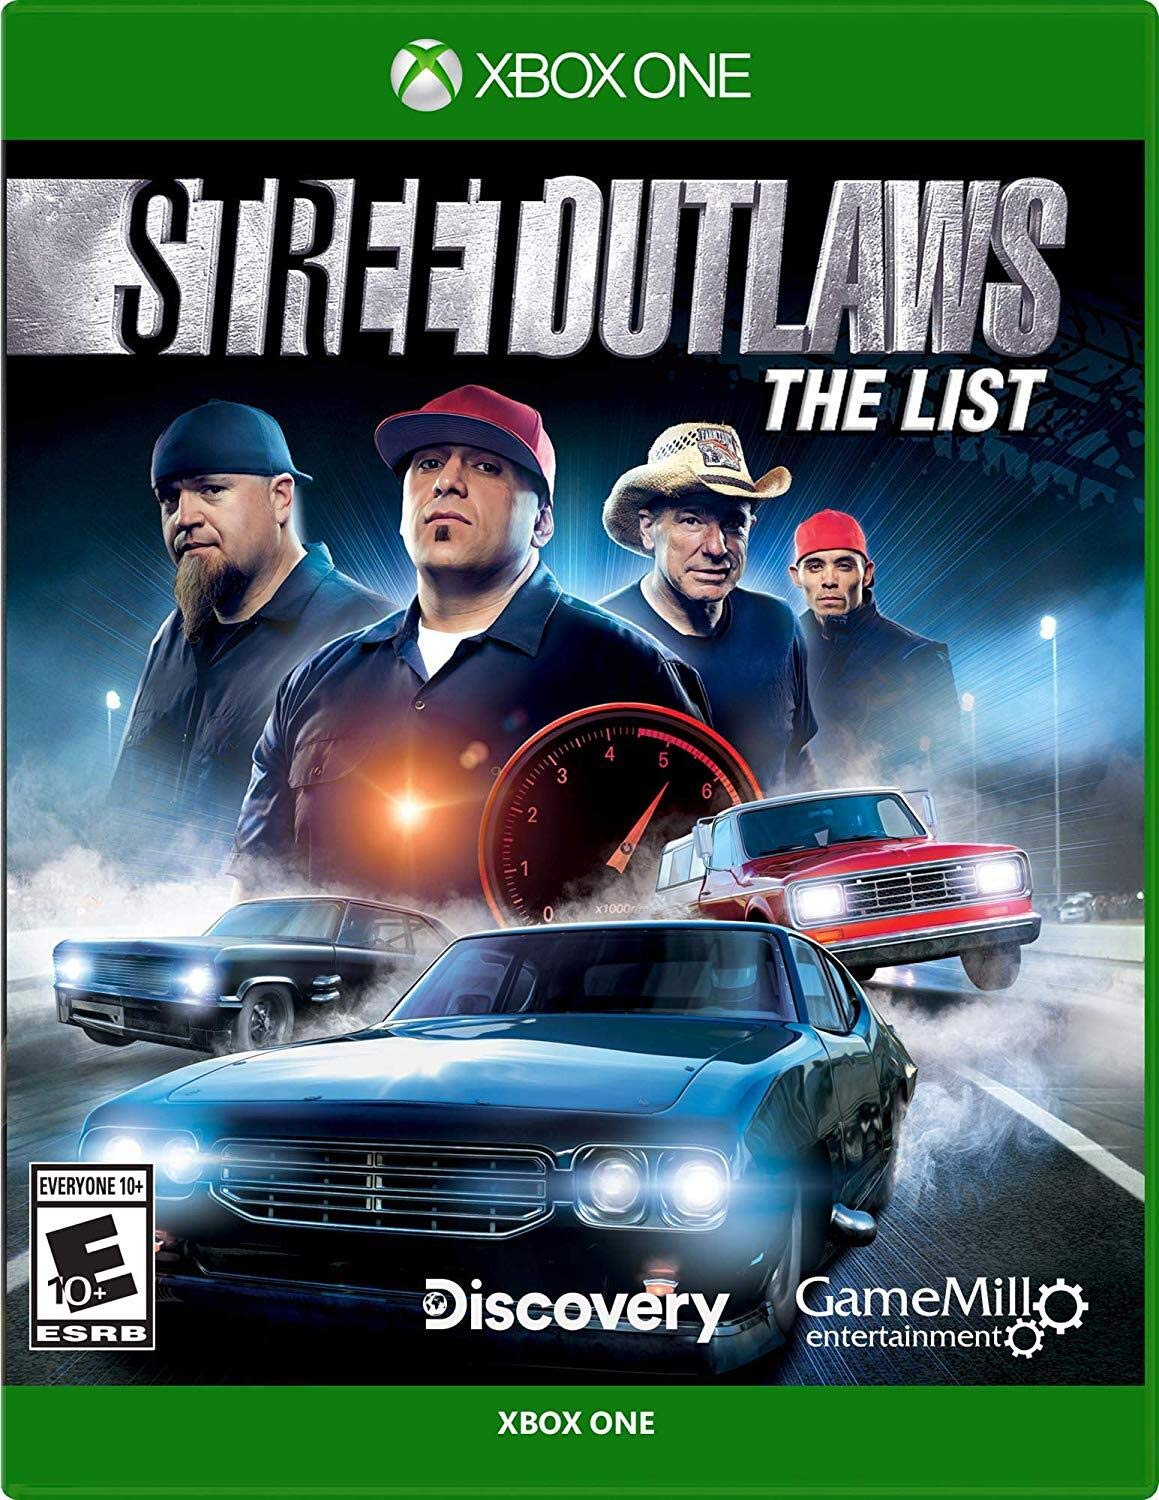 Street Outlaws: The List for Xbox One [USA]: Amazon.es: Game Mill Entertainment: Cine y Series TV